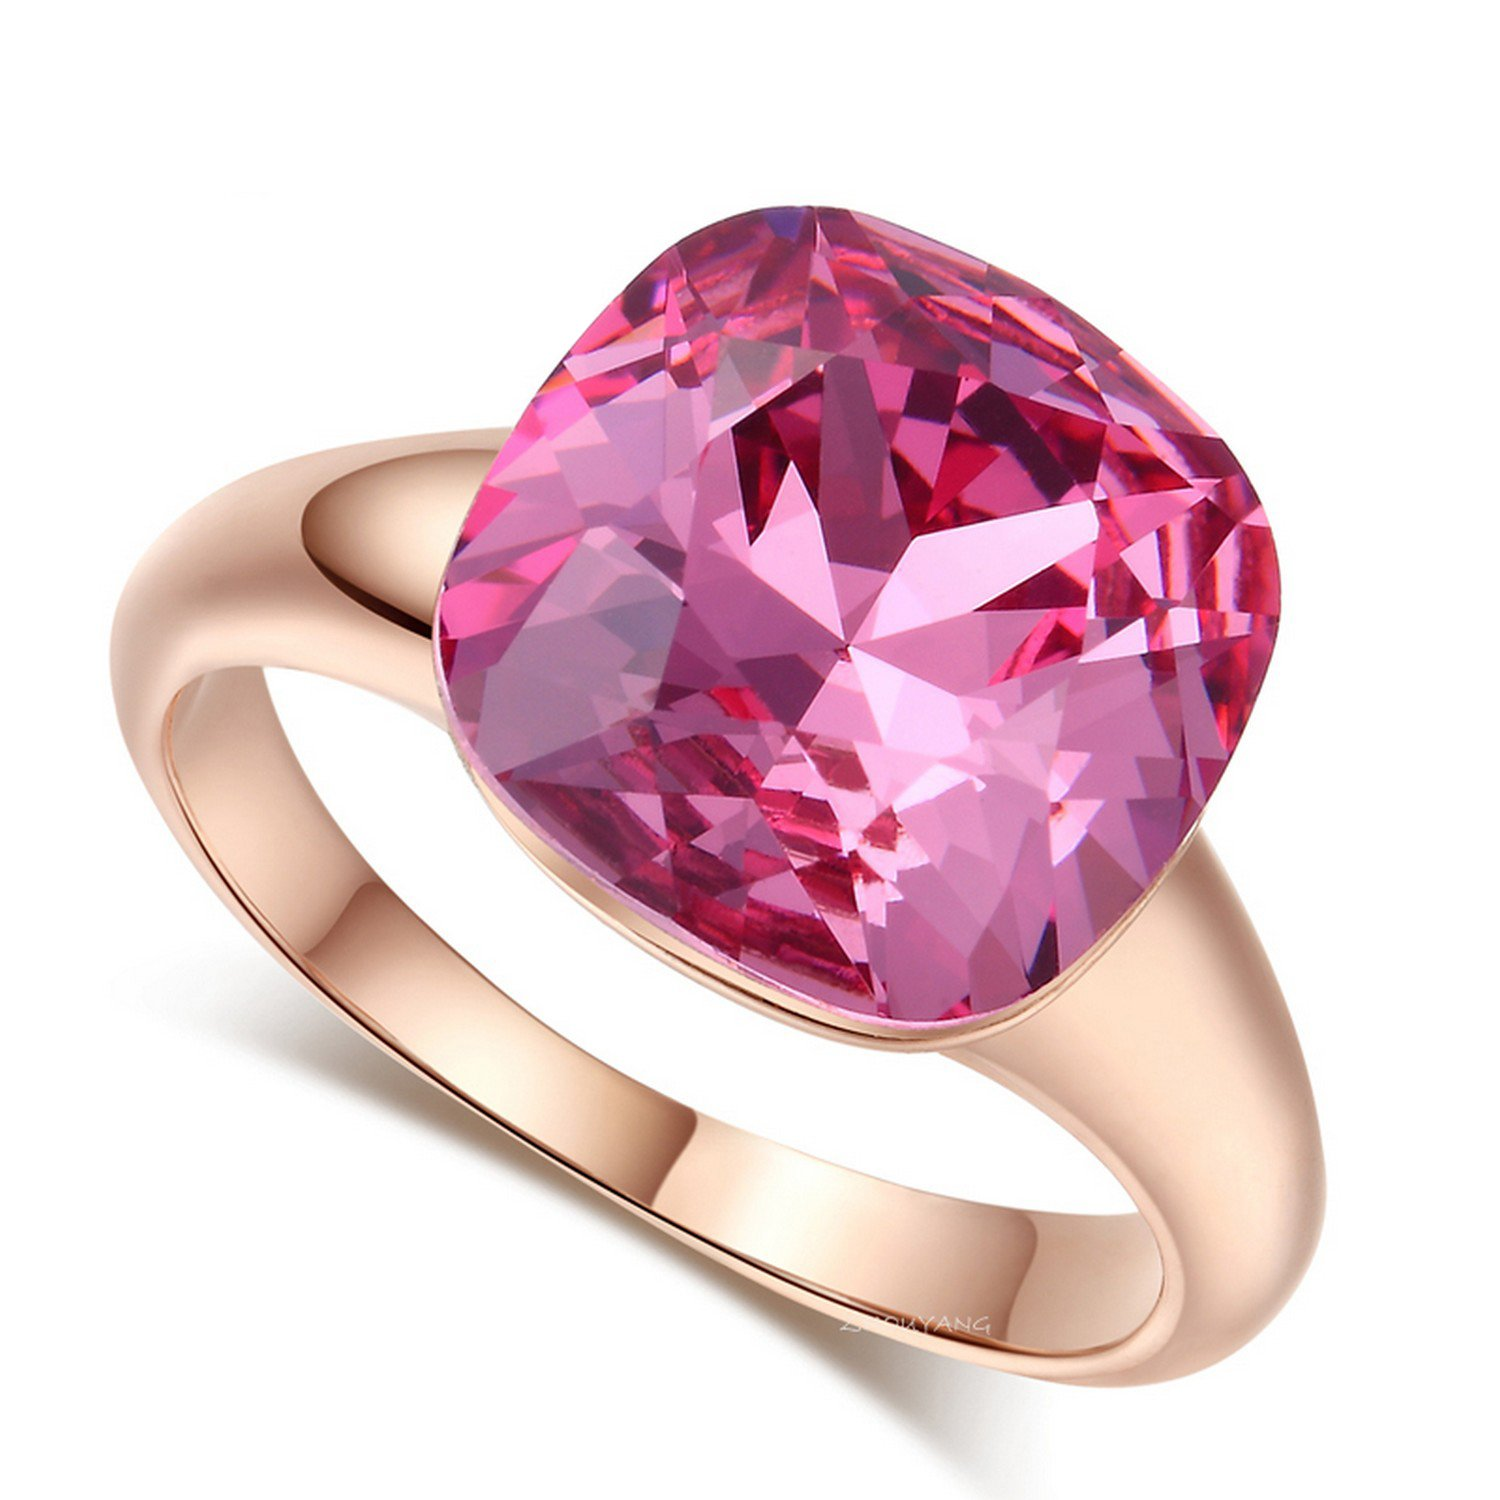 Cherryn Magic Pink Rose Gold Color Jewelry Ring Made With engagement rings